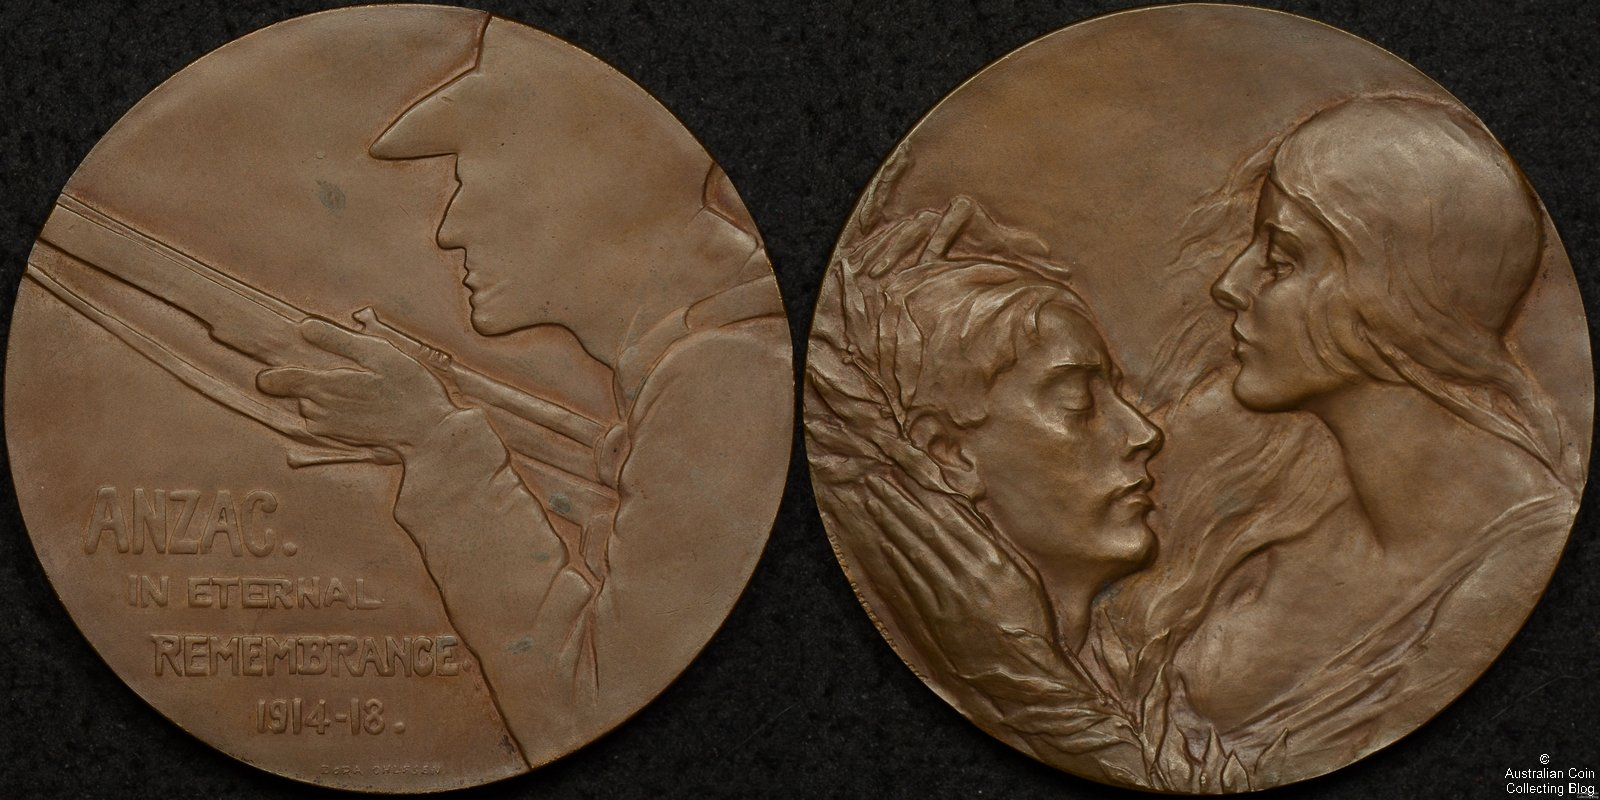 1919 ANZAC Remembrance Medallion – Dora Ohlfsen